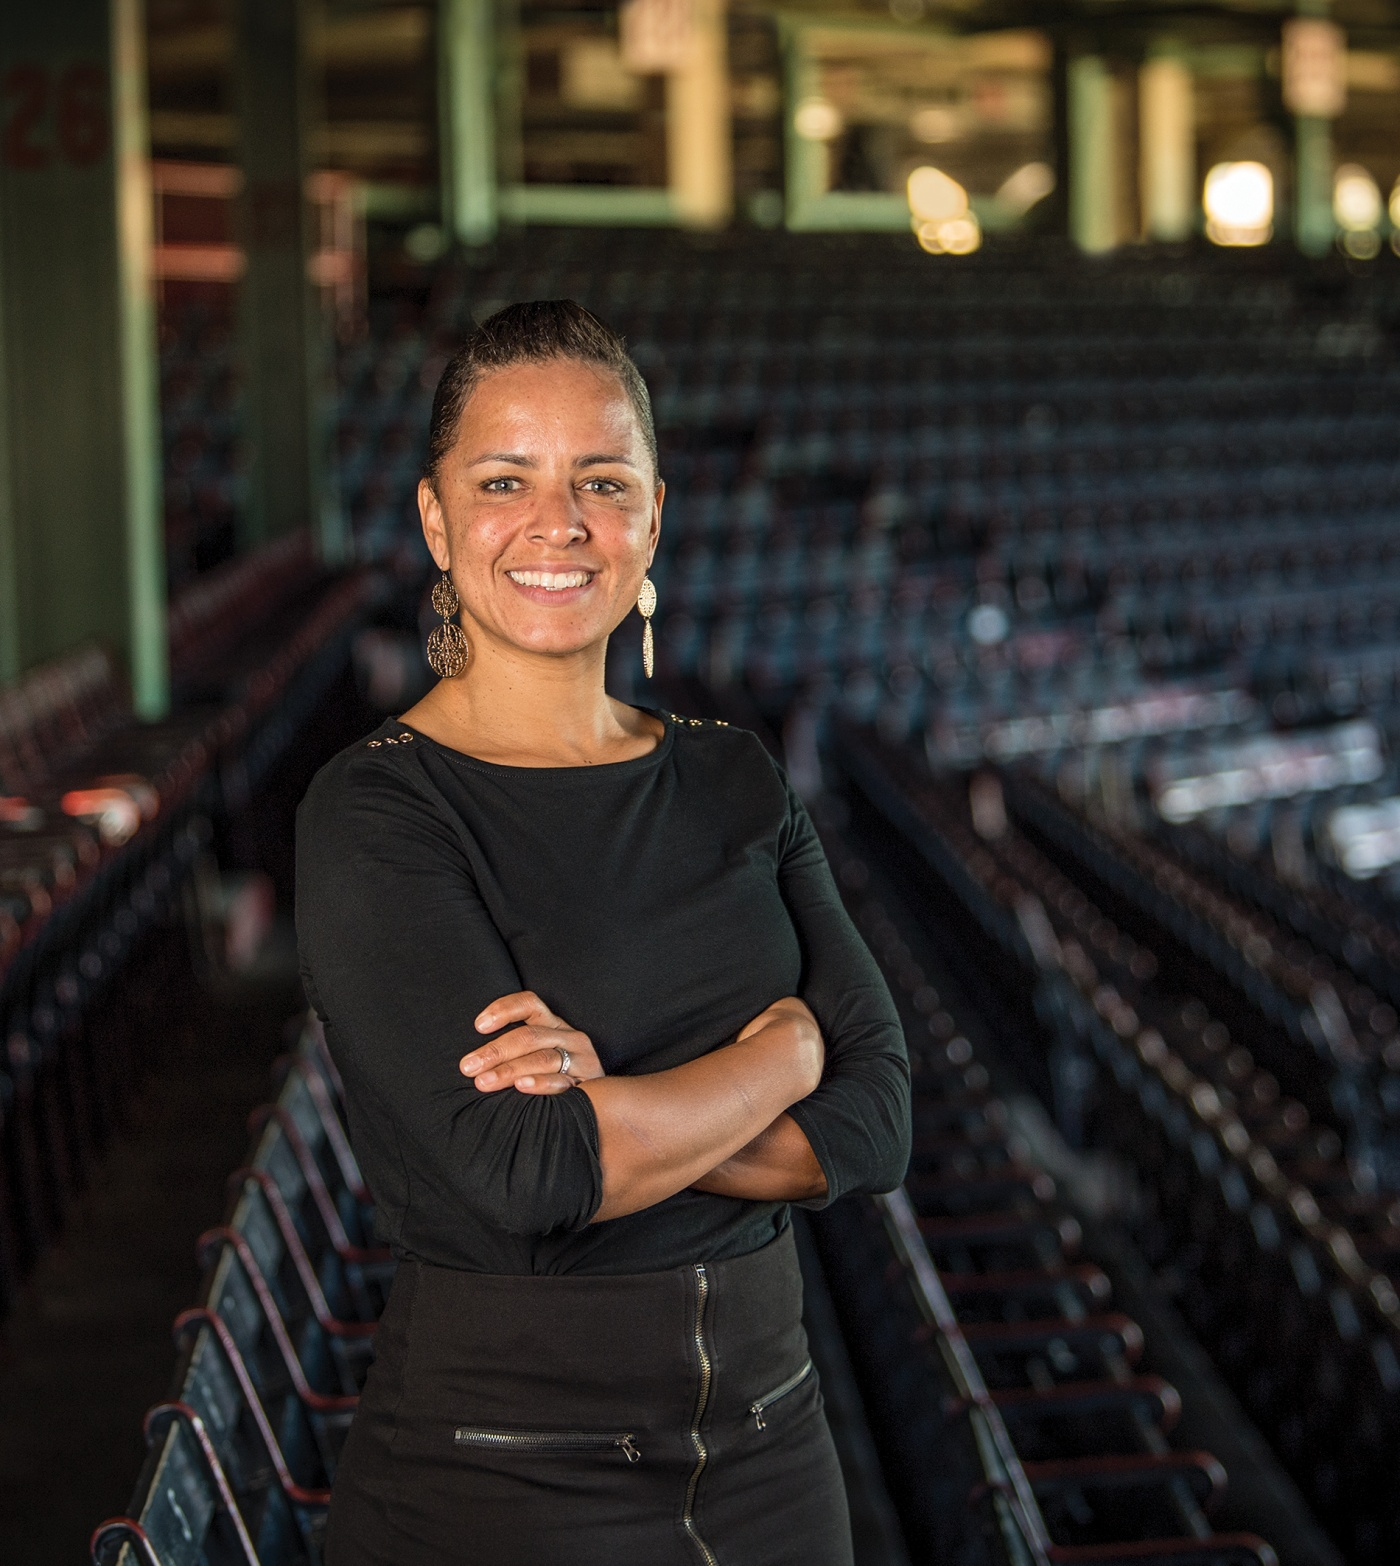 Photograph of Rebekah Splaine Salwasser '01 standing in the Boston Red Sox stadium